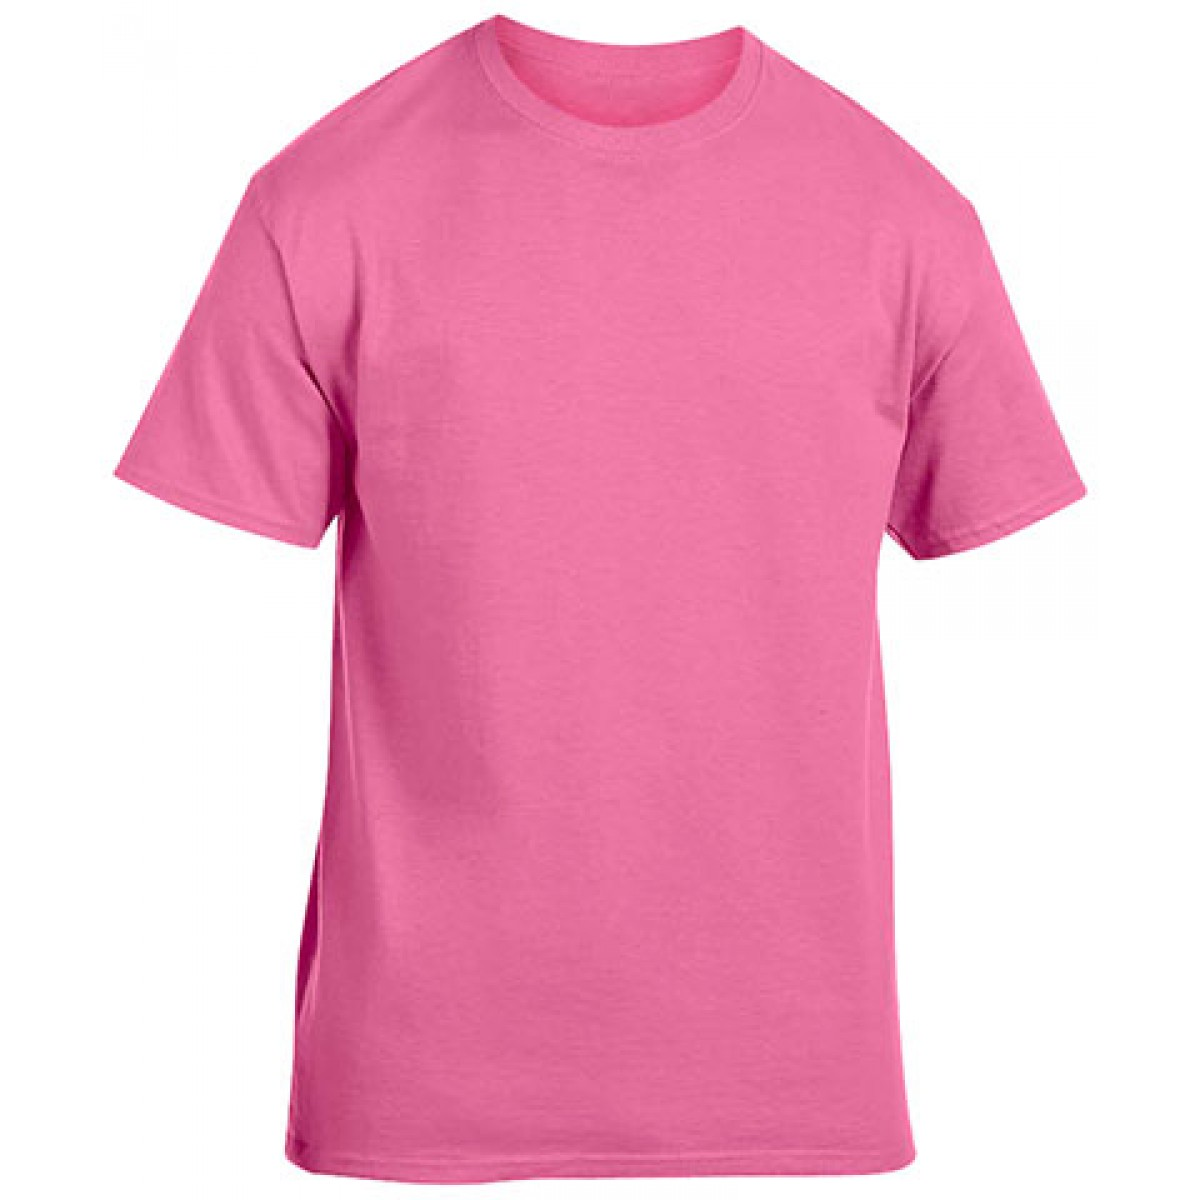 Cotton Short Sleeve T-Shirt-Safety Pink-S